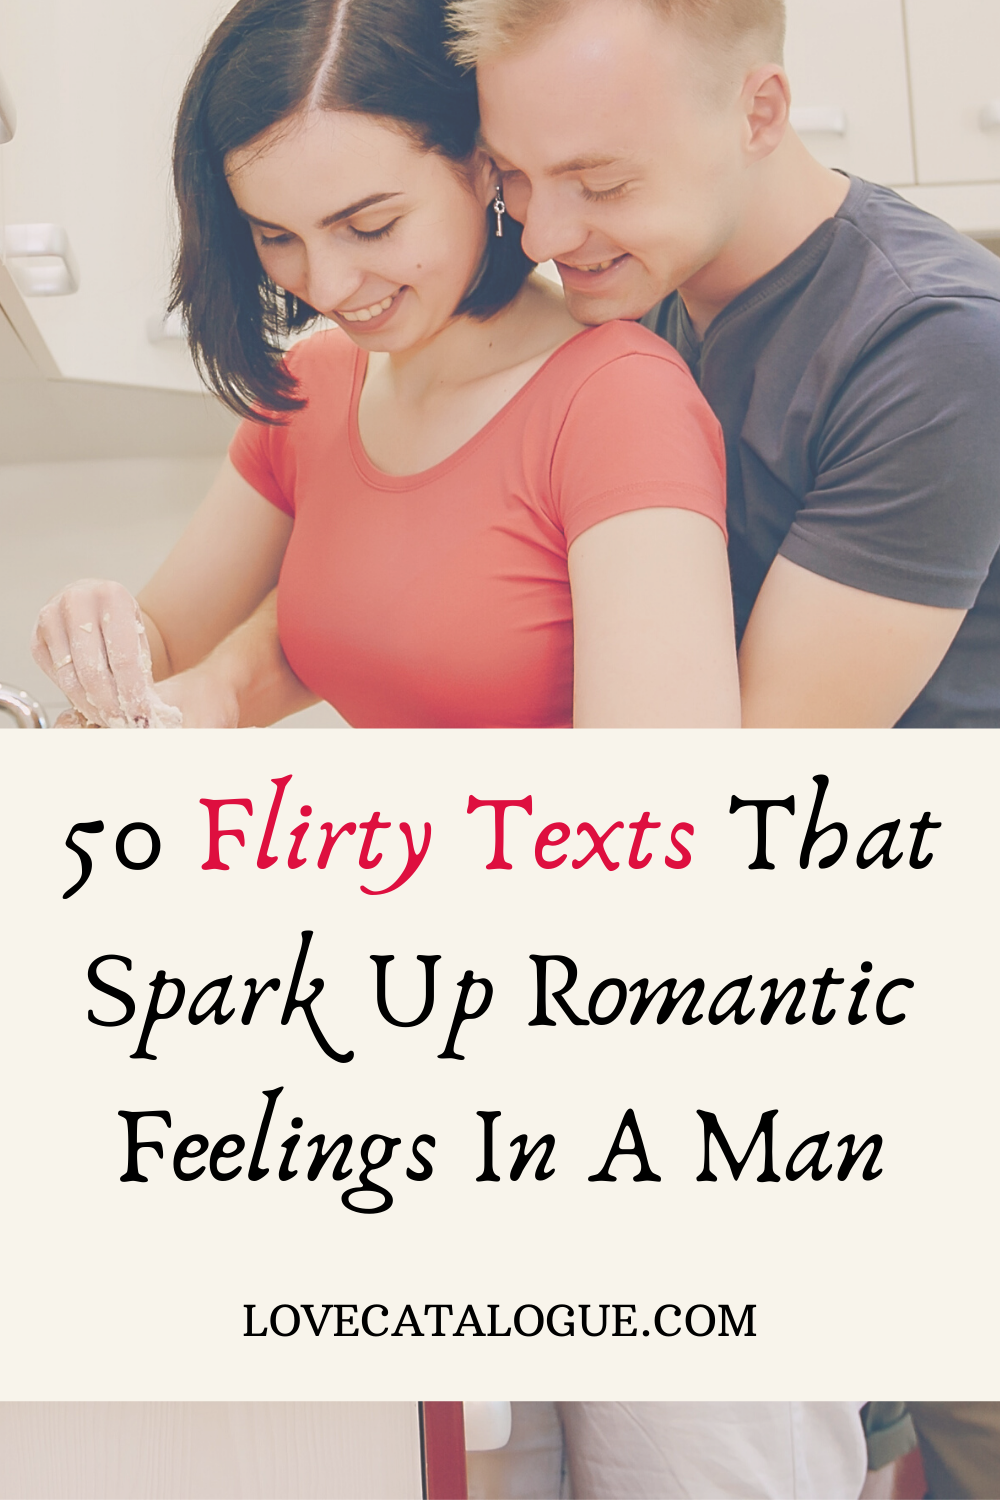 100 Flirty Text Messages To Turn The Heat Up | Flirty